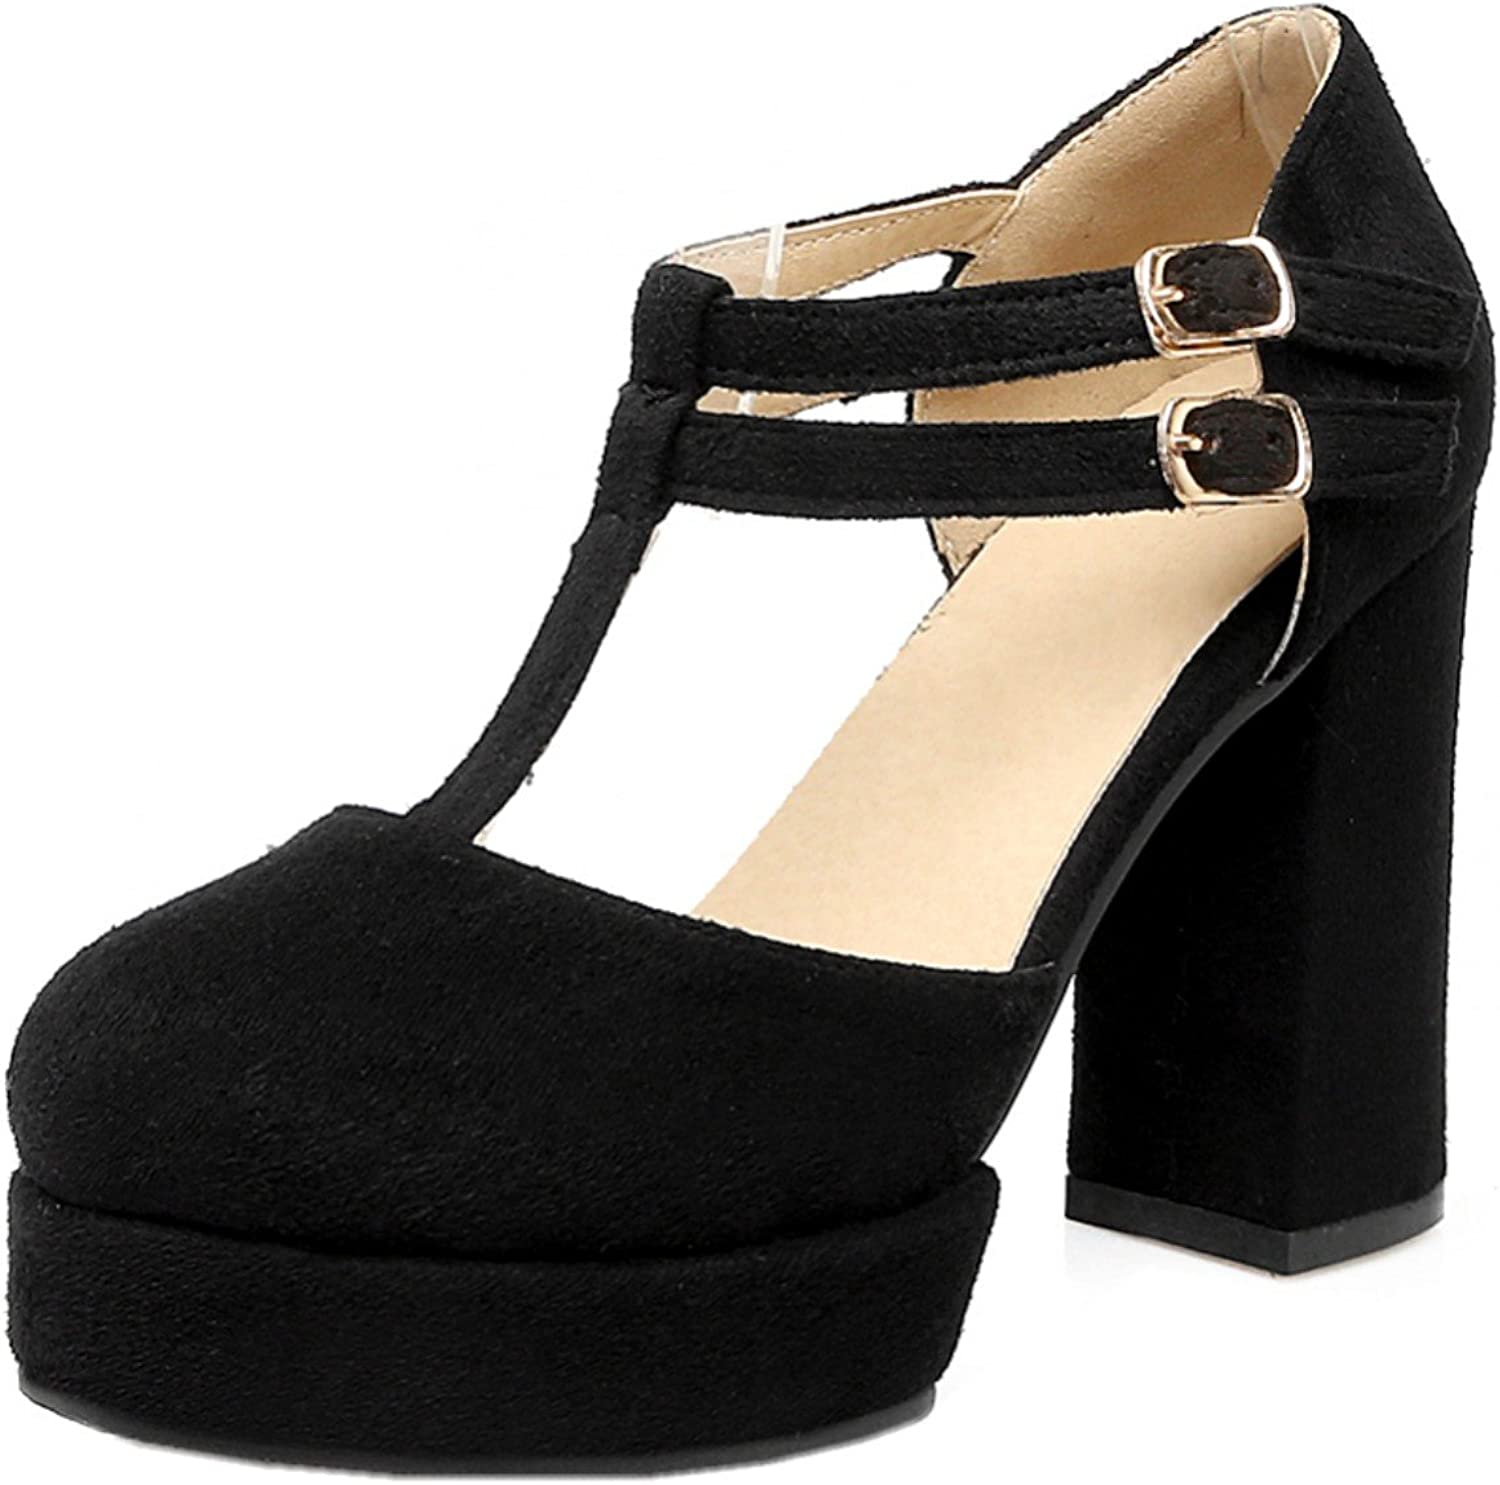 Rongzhi Womens Suede Heeled Sandals High Heels Ankle T-Strap Buckle Block Heel Platform shoes Round Toe